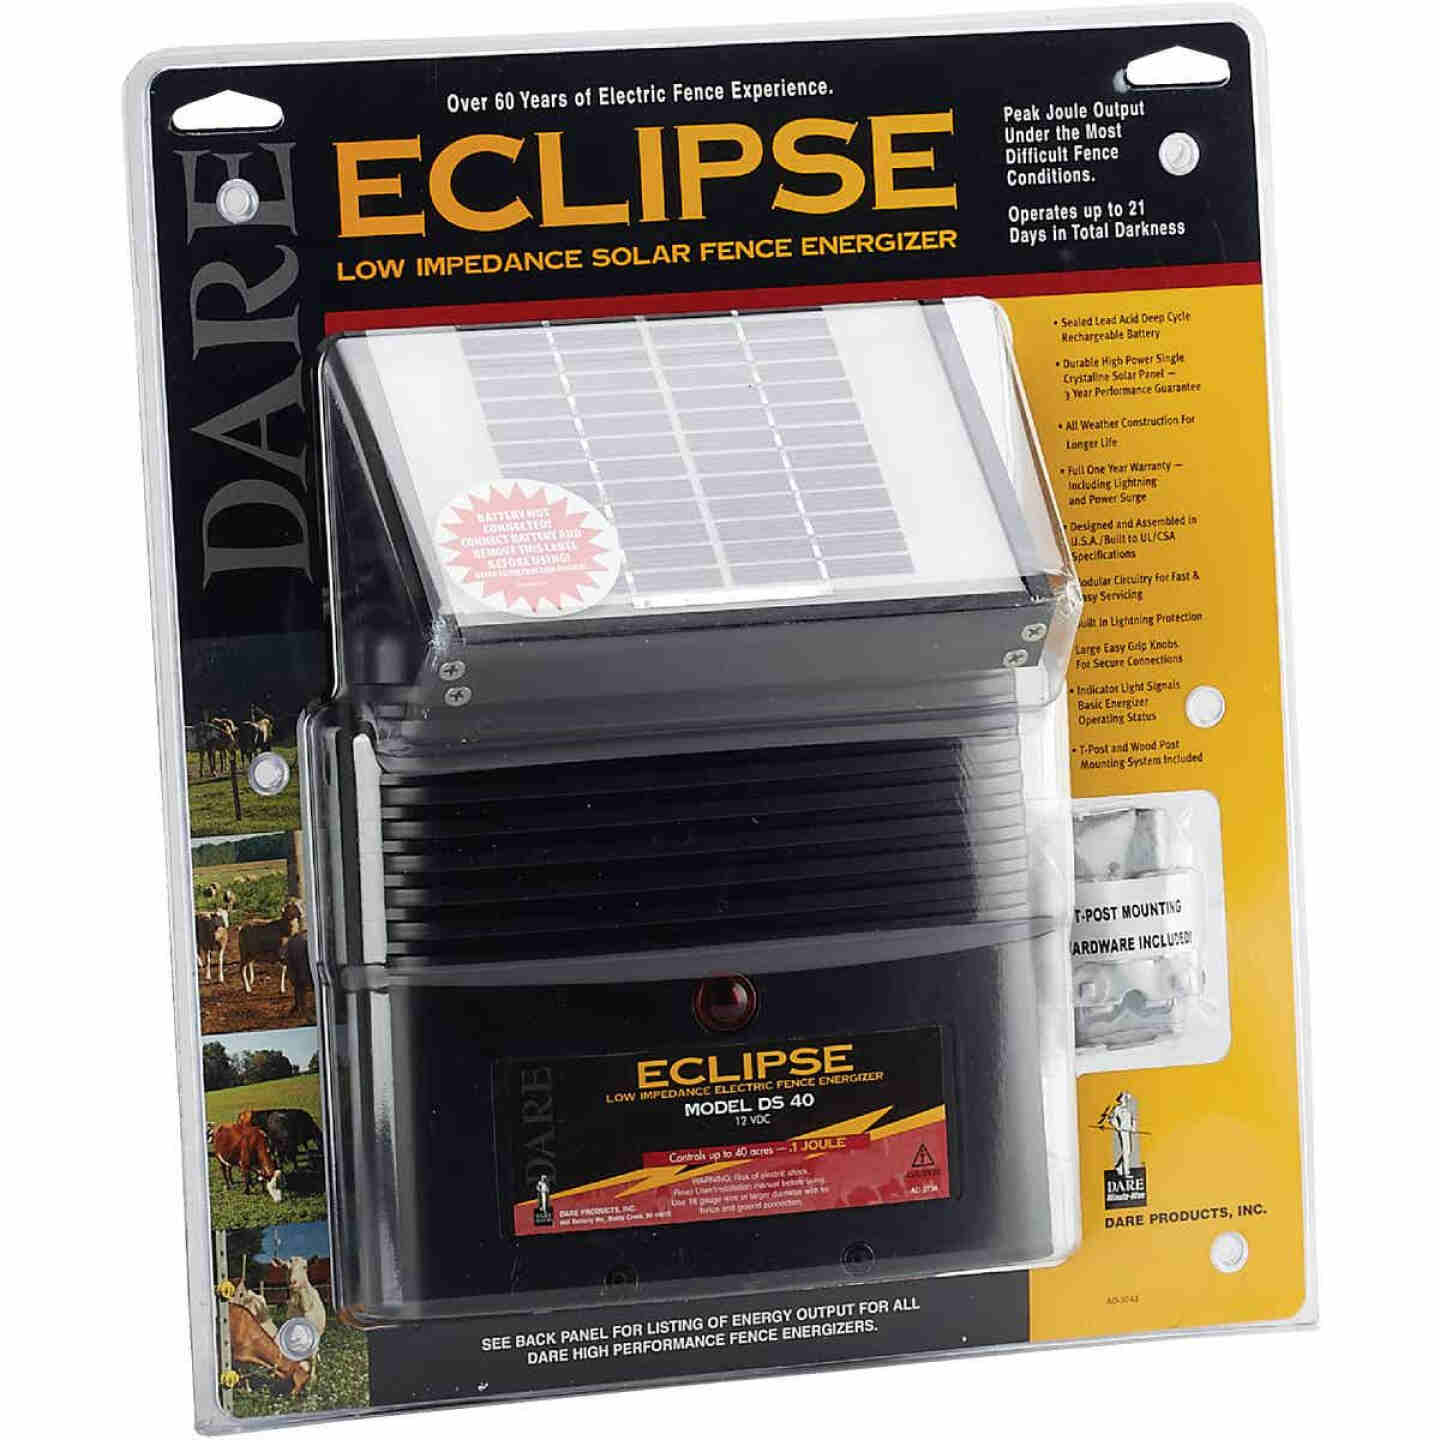 Dare Eclipse 40-Acre Electric Fence Charger Image 2